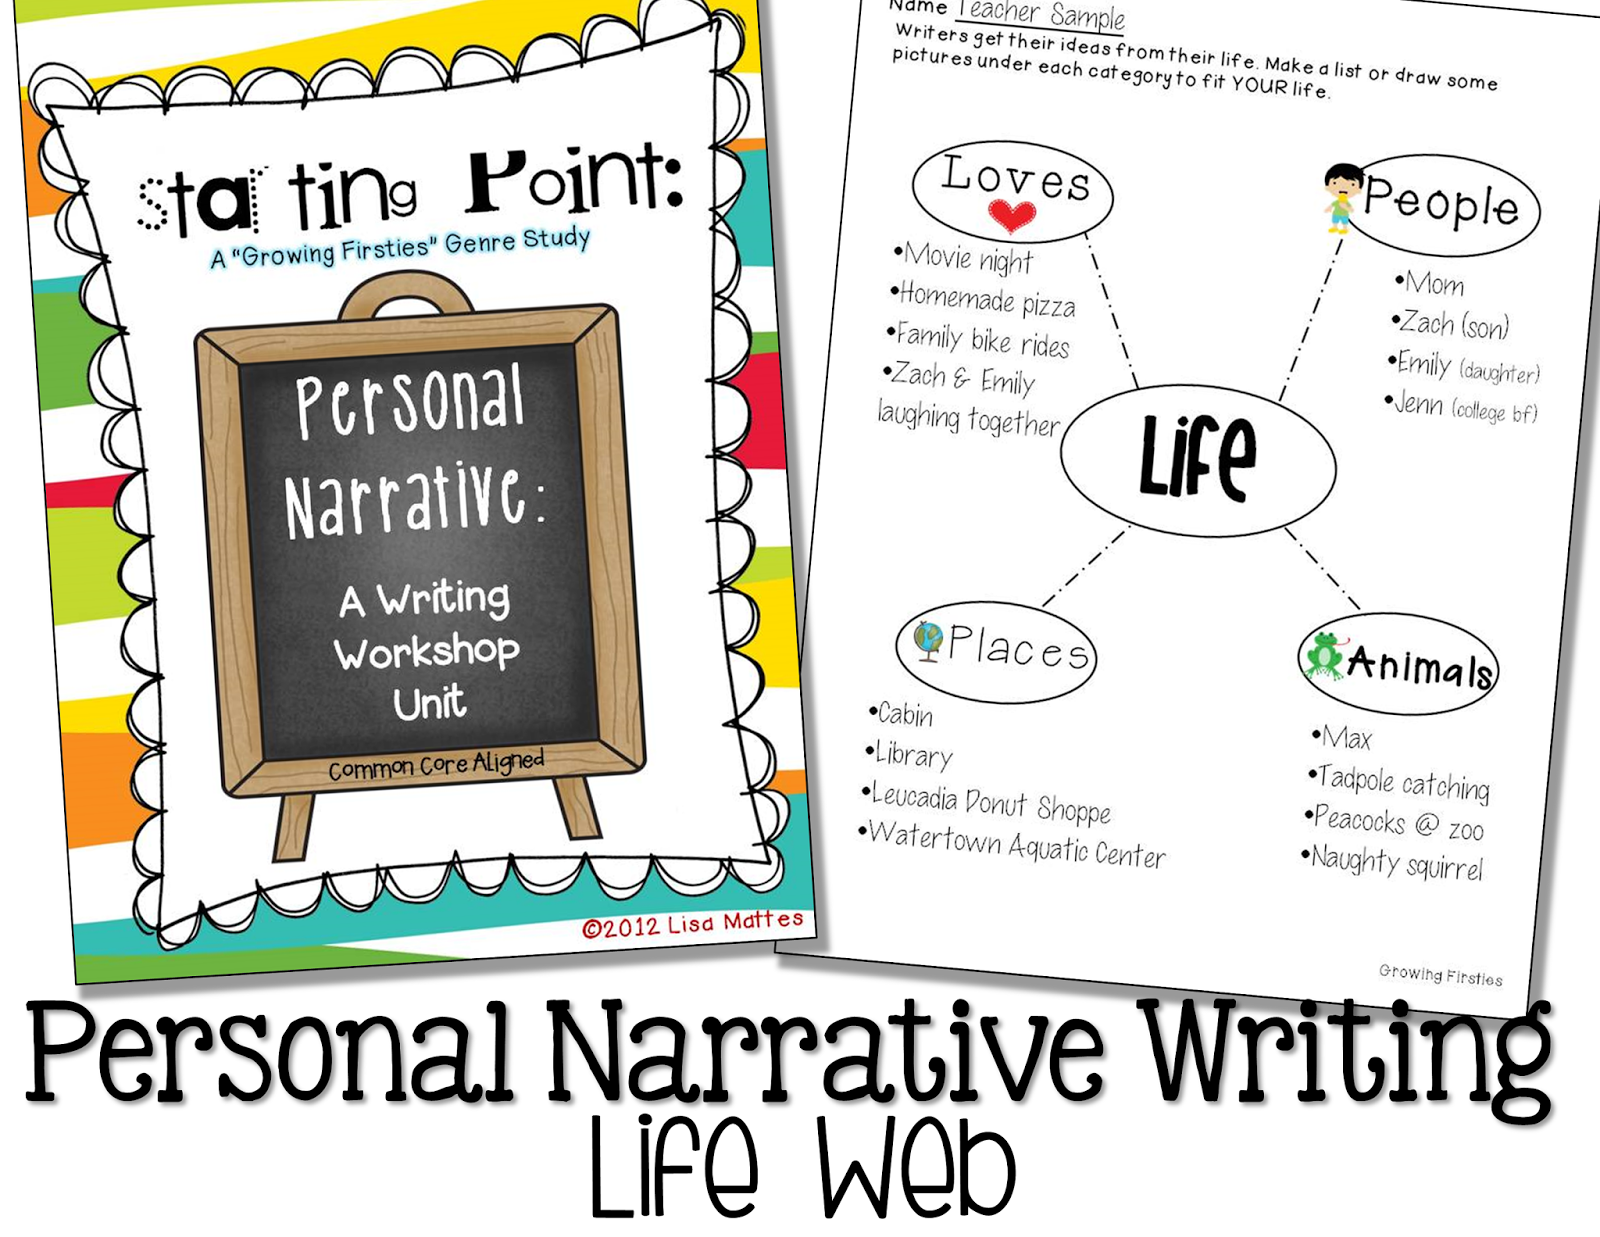 personal narrative essay about growing up Category: personal narrative, autobiographical essay title: growing up.